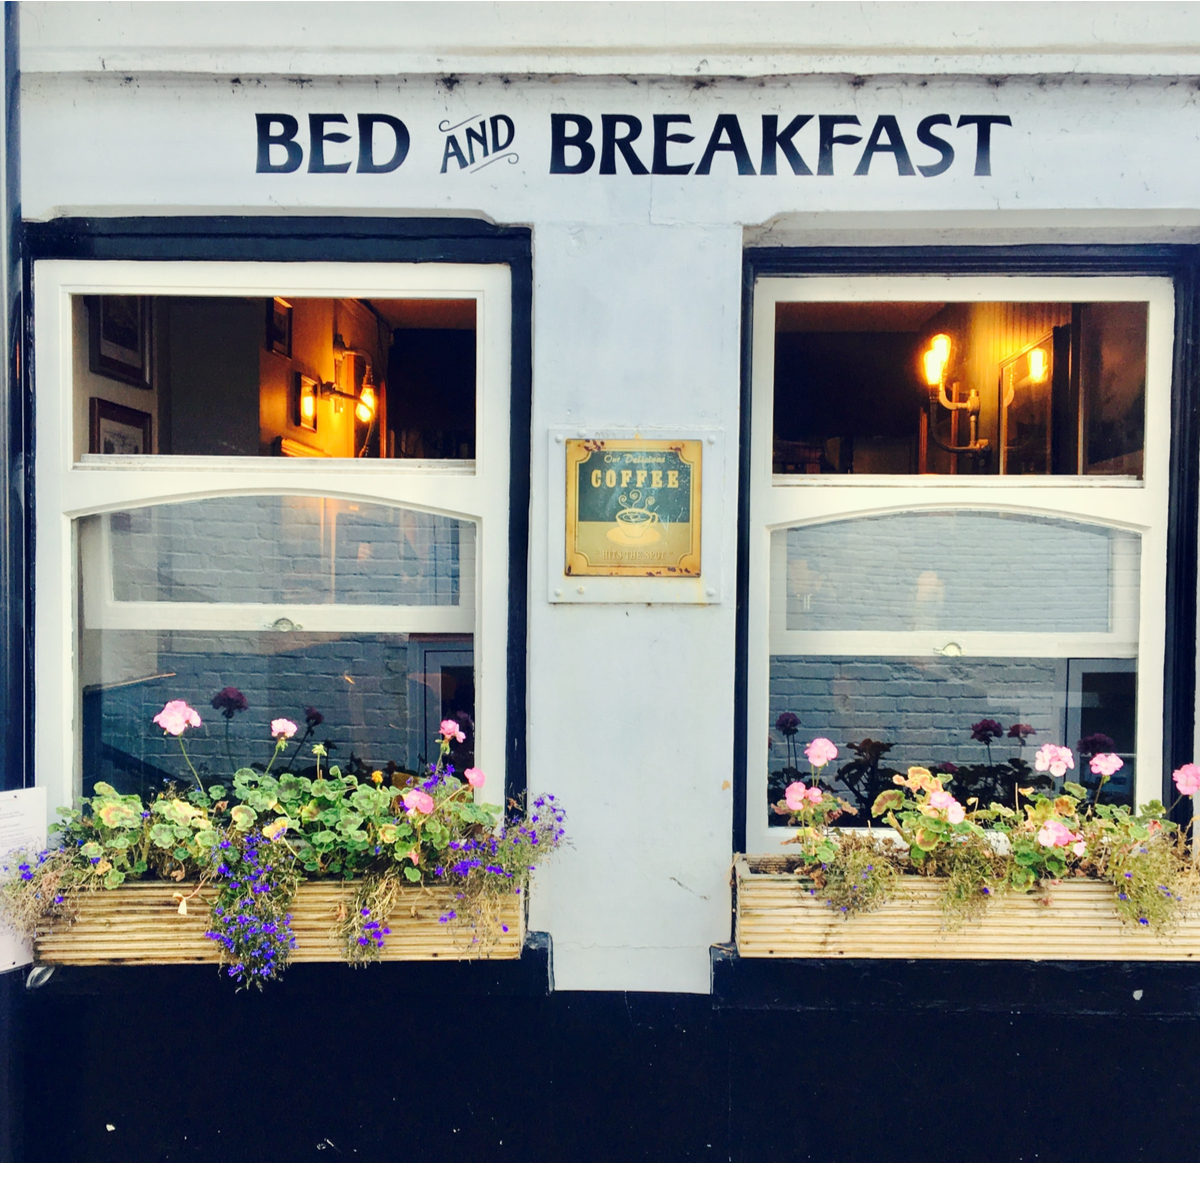 Bed & Breakfast signage and building.